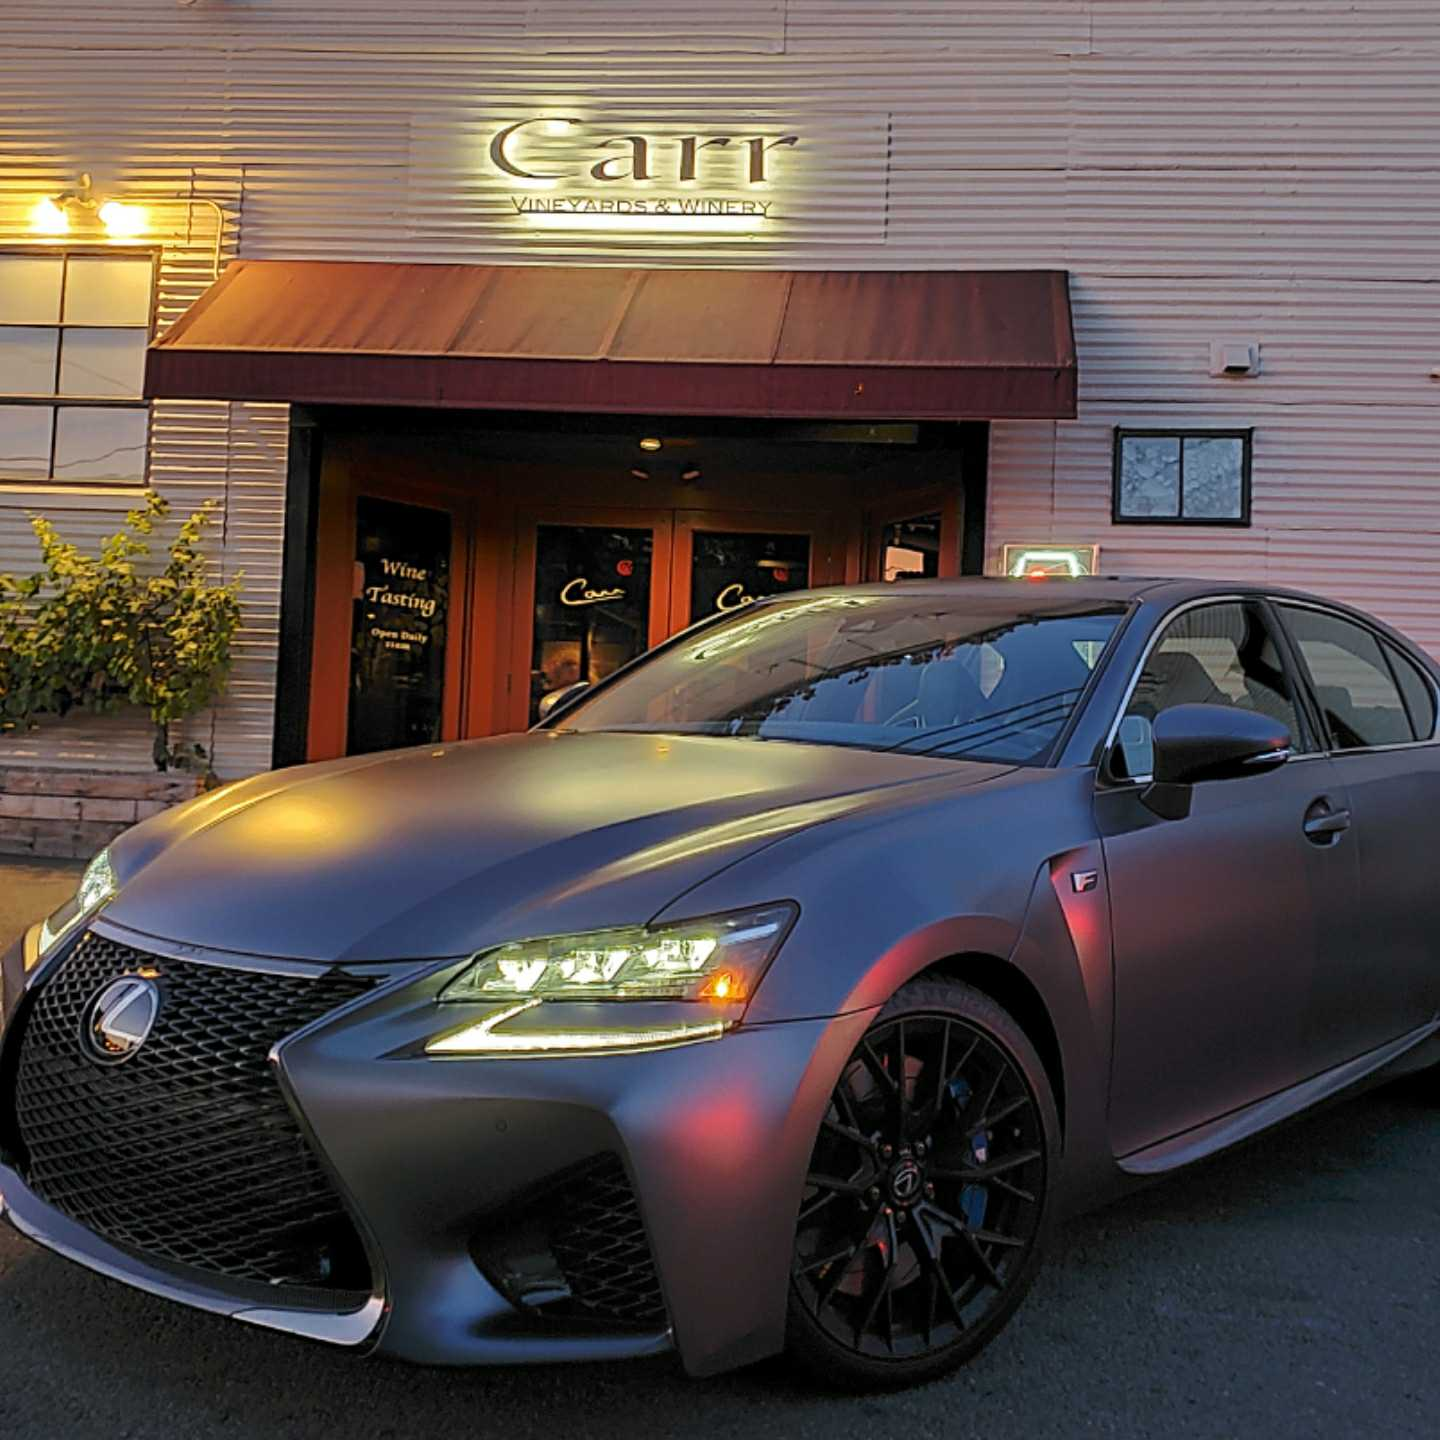 Carr Winery, Santa Barbara, 360 MAGAZINE, Lexus, GS F, Vaughn Lowery